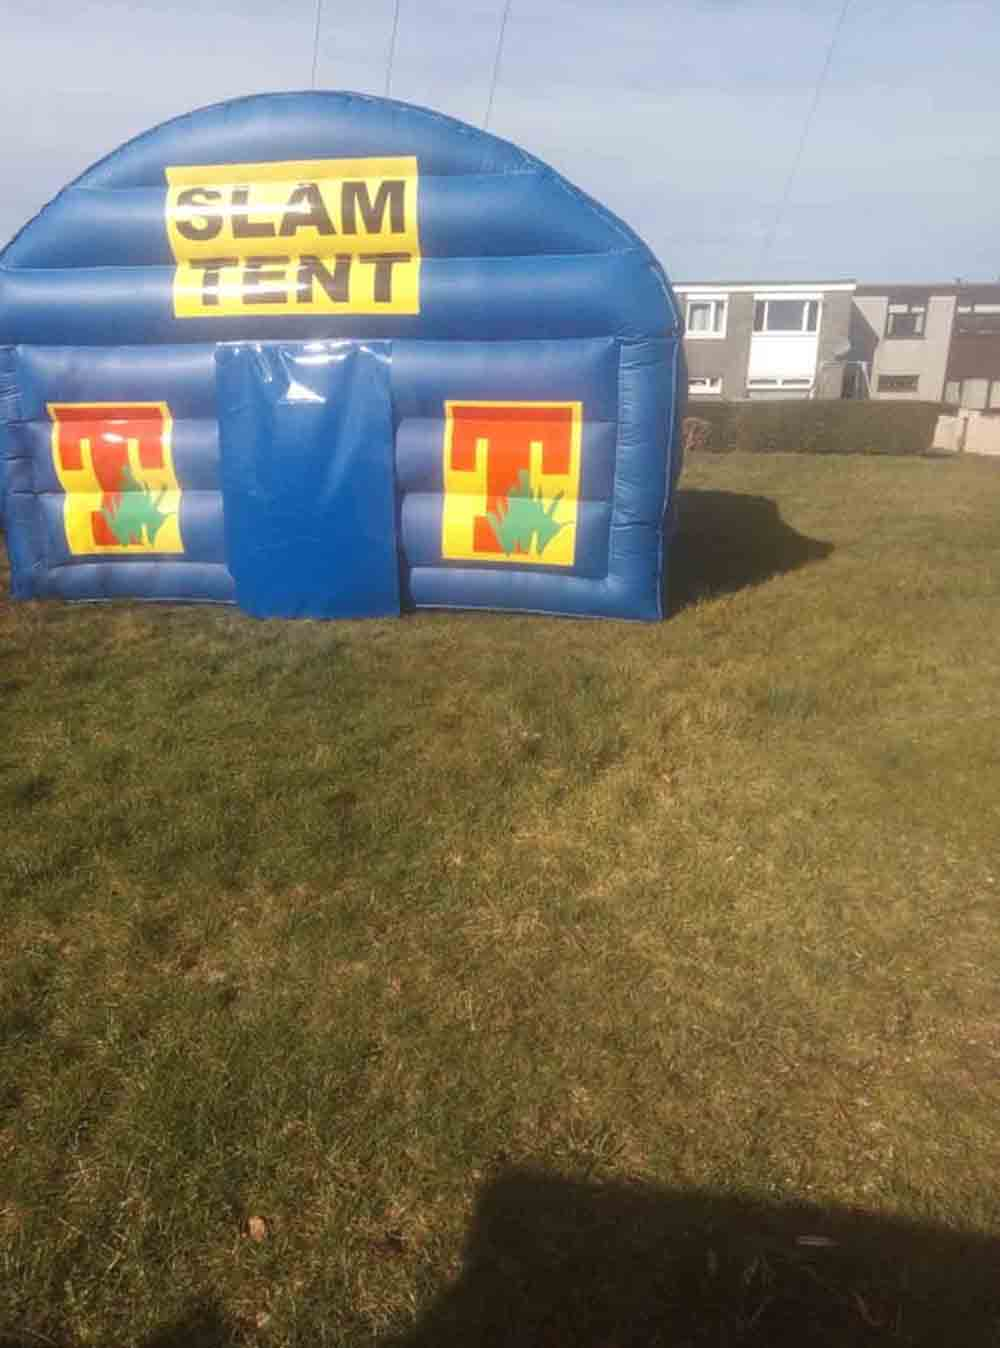 Thousands of Scottish festival goers try to hire Slam Tent - Scottish News